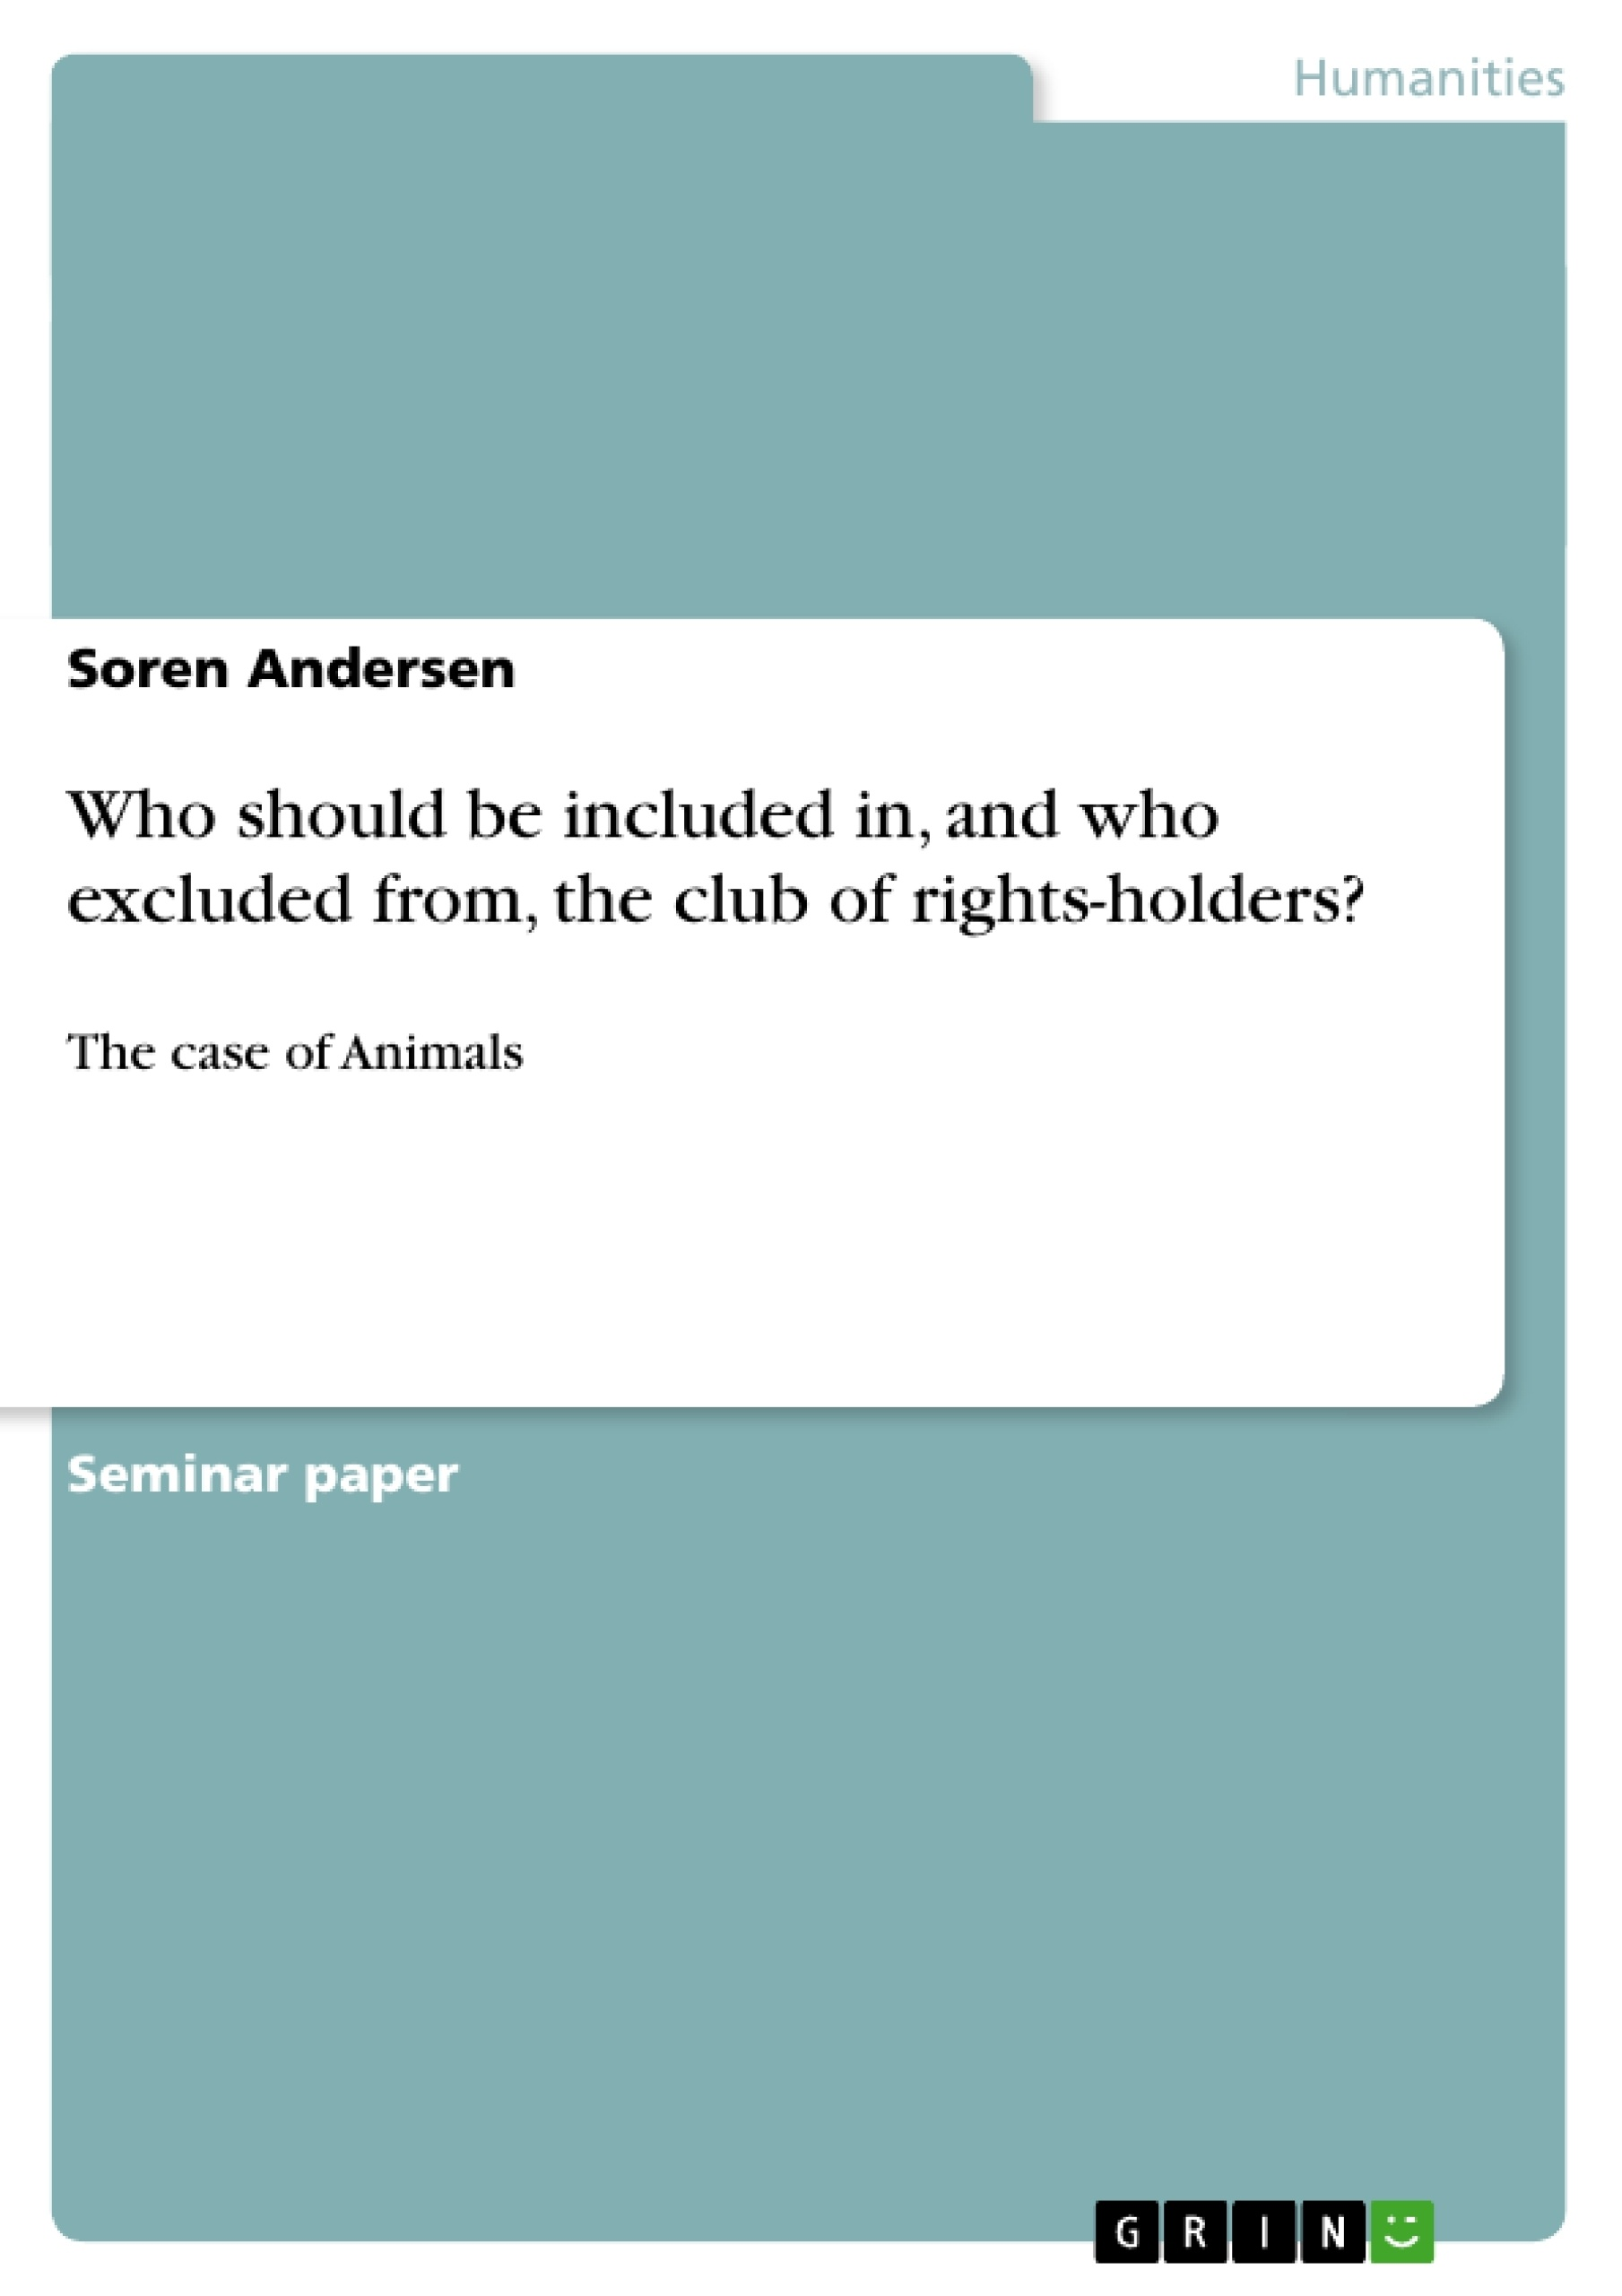 Title: Who should be included in, and who excluded from, the club of rights-holders?